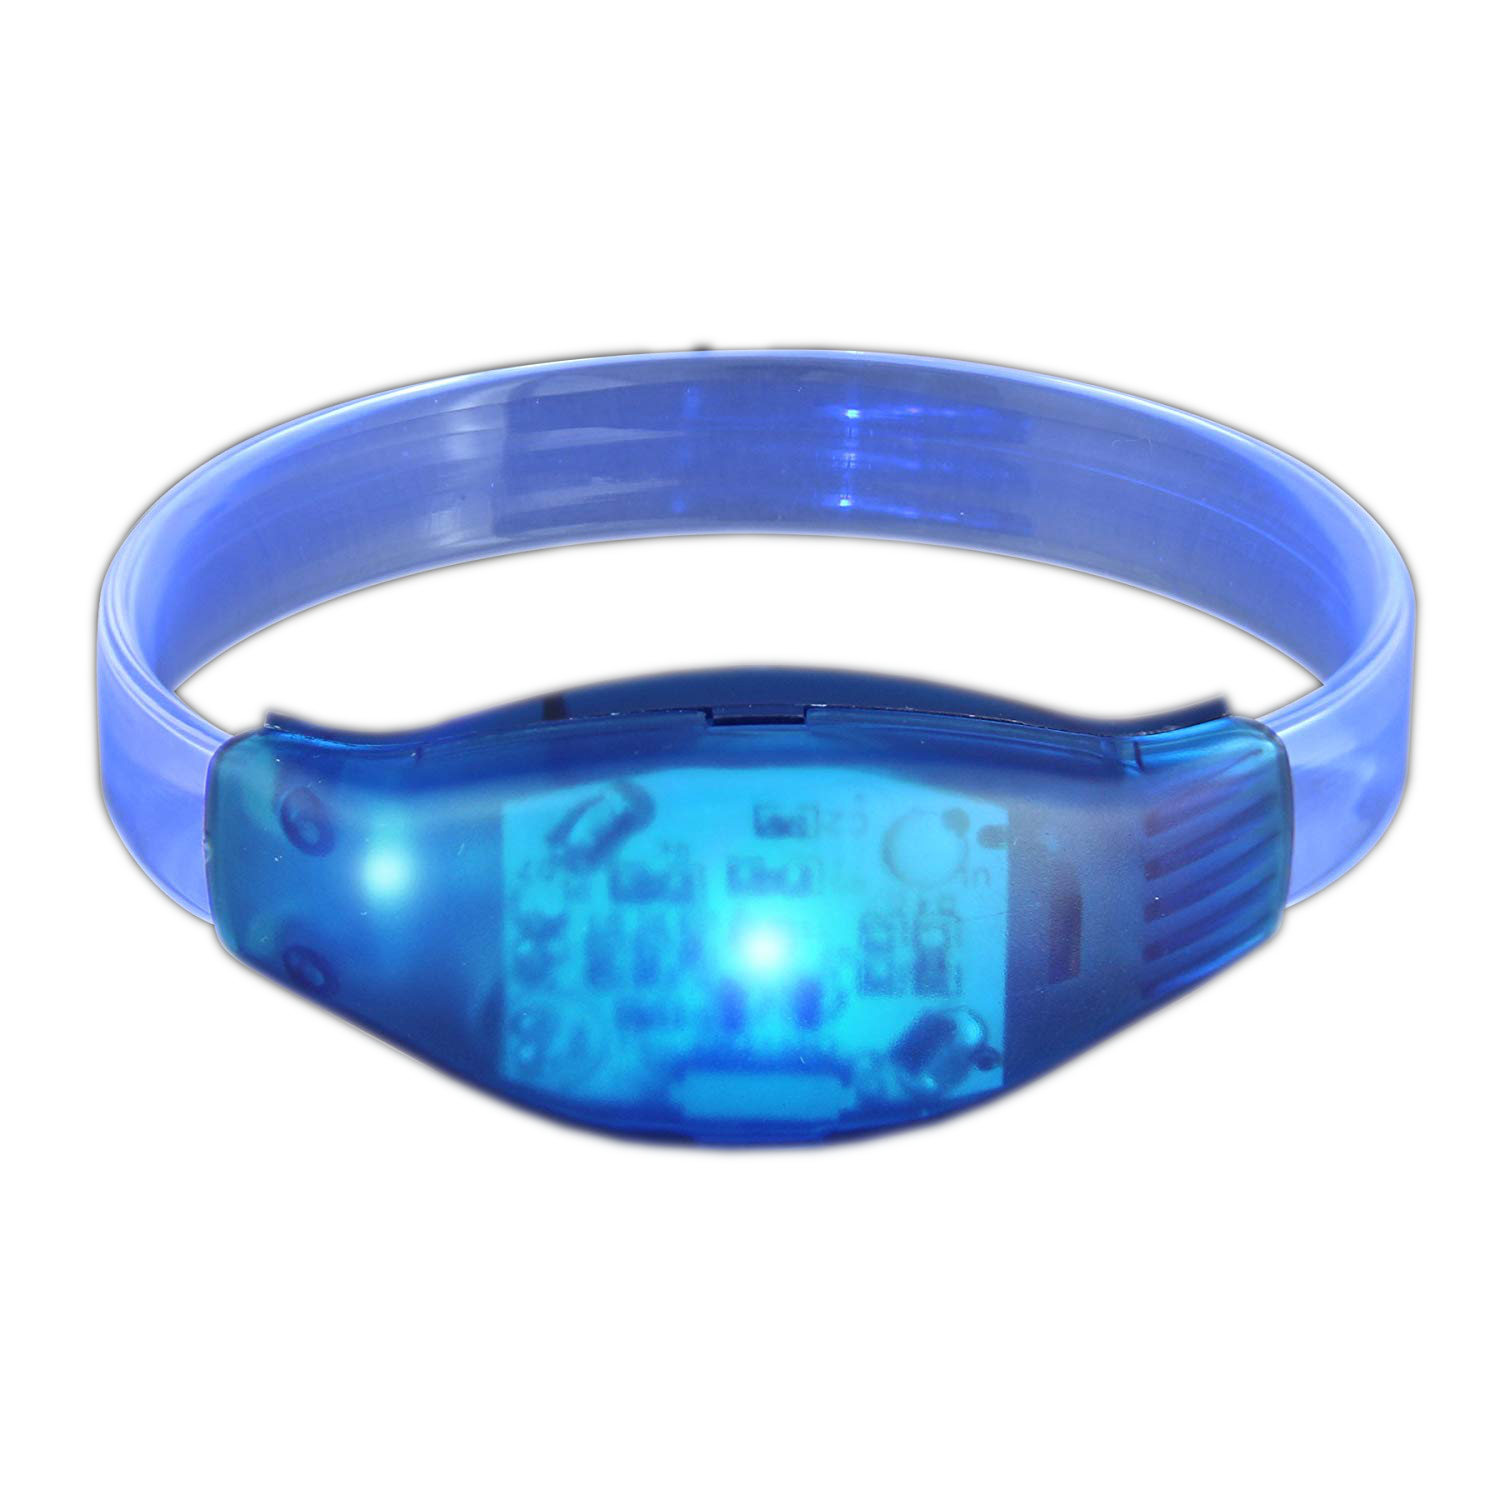 Sound Activated Blue LED Bracelet All Products